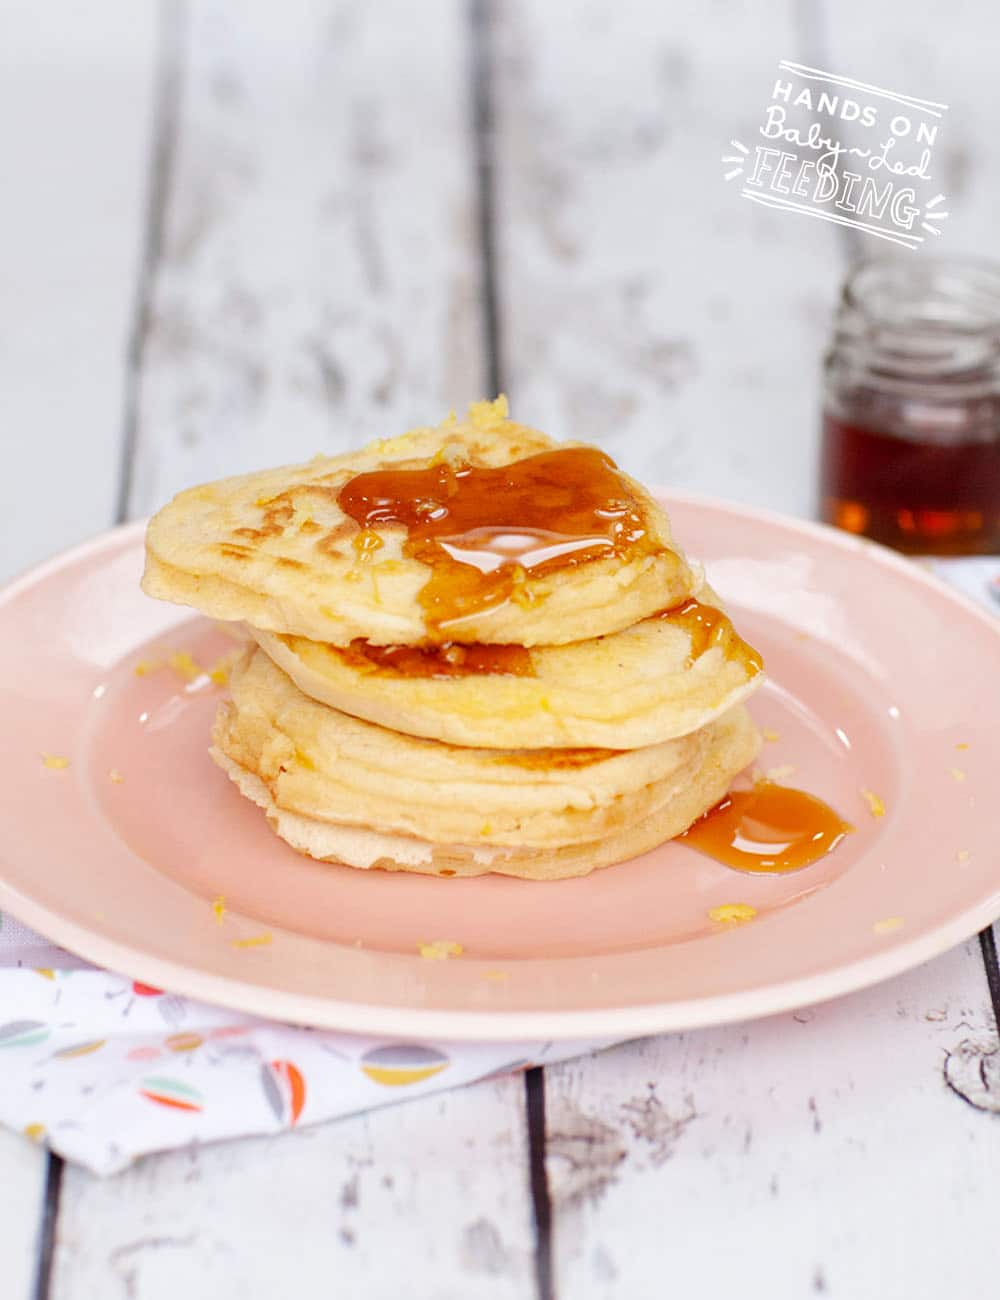 Zesty lemon and sweet maple syrup are the perfect combination in this super easy healthy baby led weaning pancake! This refined sugar free finger food can be made ahead and frozen for a quick breakfast idea on busy days. #pancakes #babyledweaning #pancakerecipe #breakfastrecipe #fingerfood #freezerfood